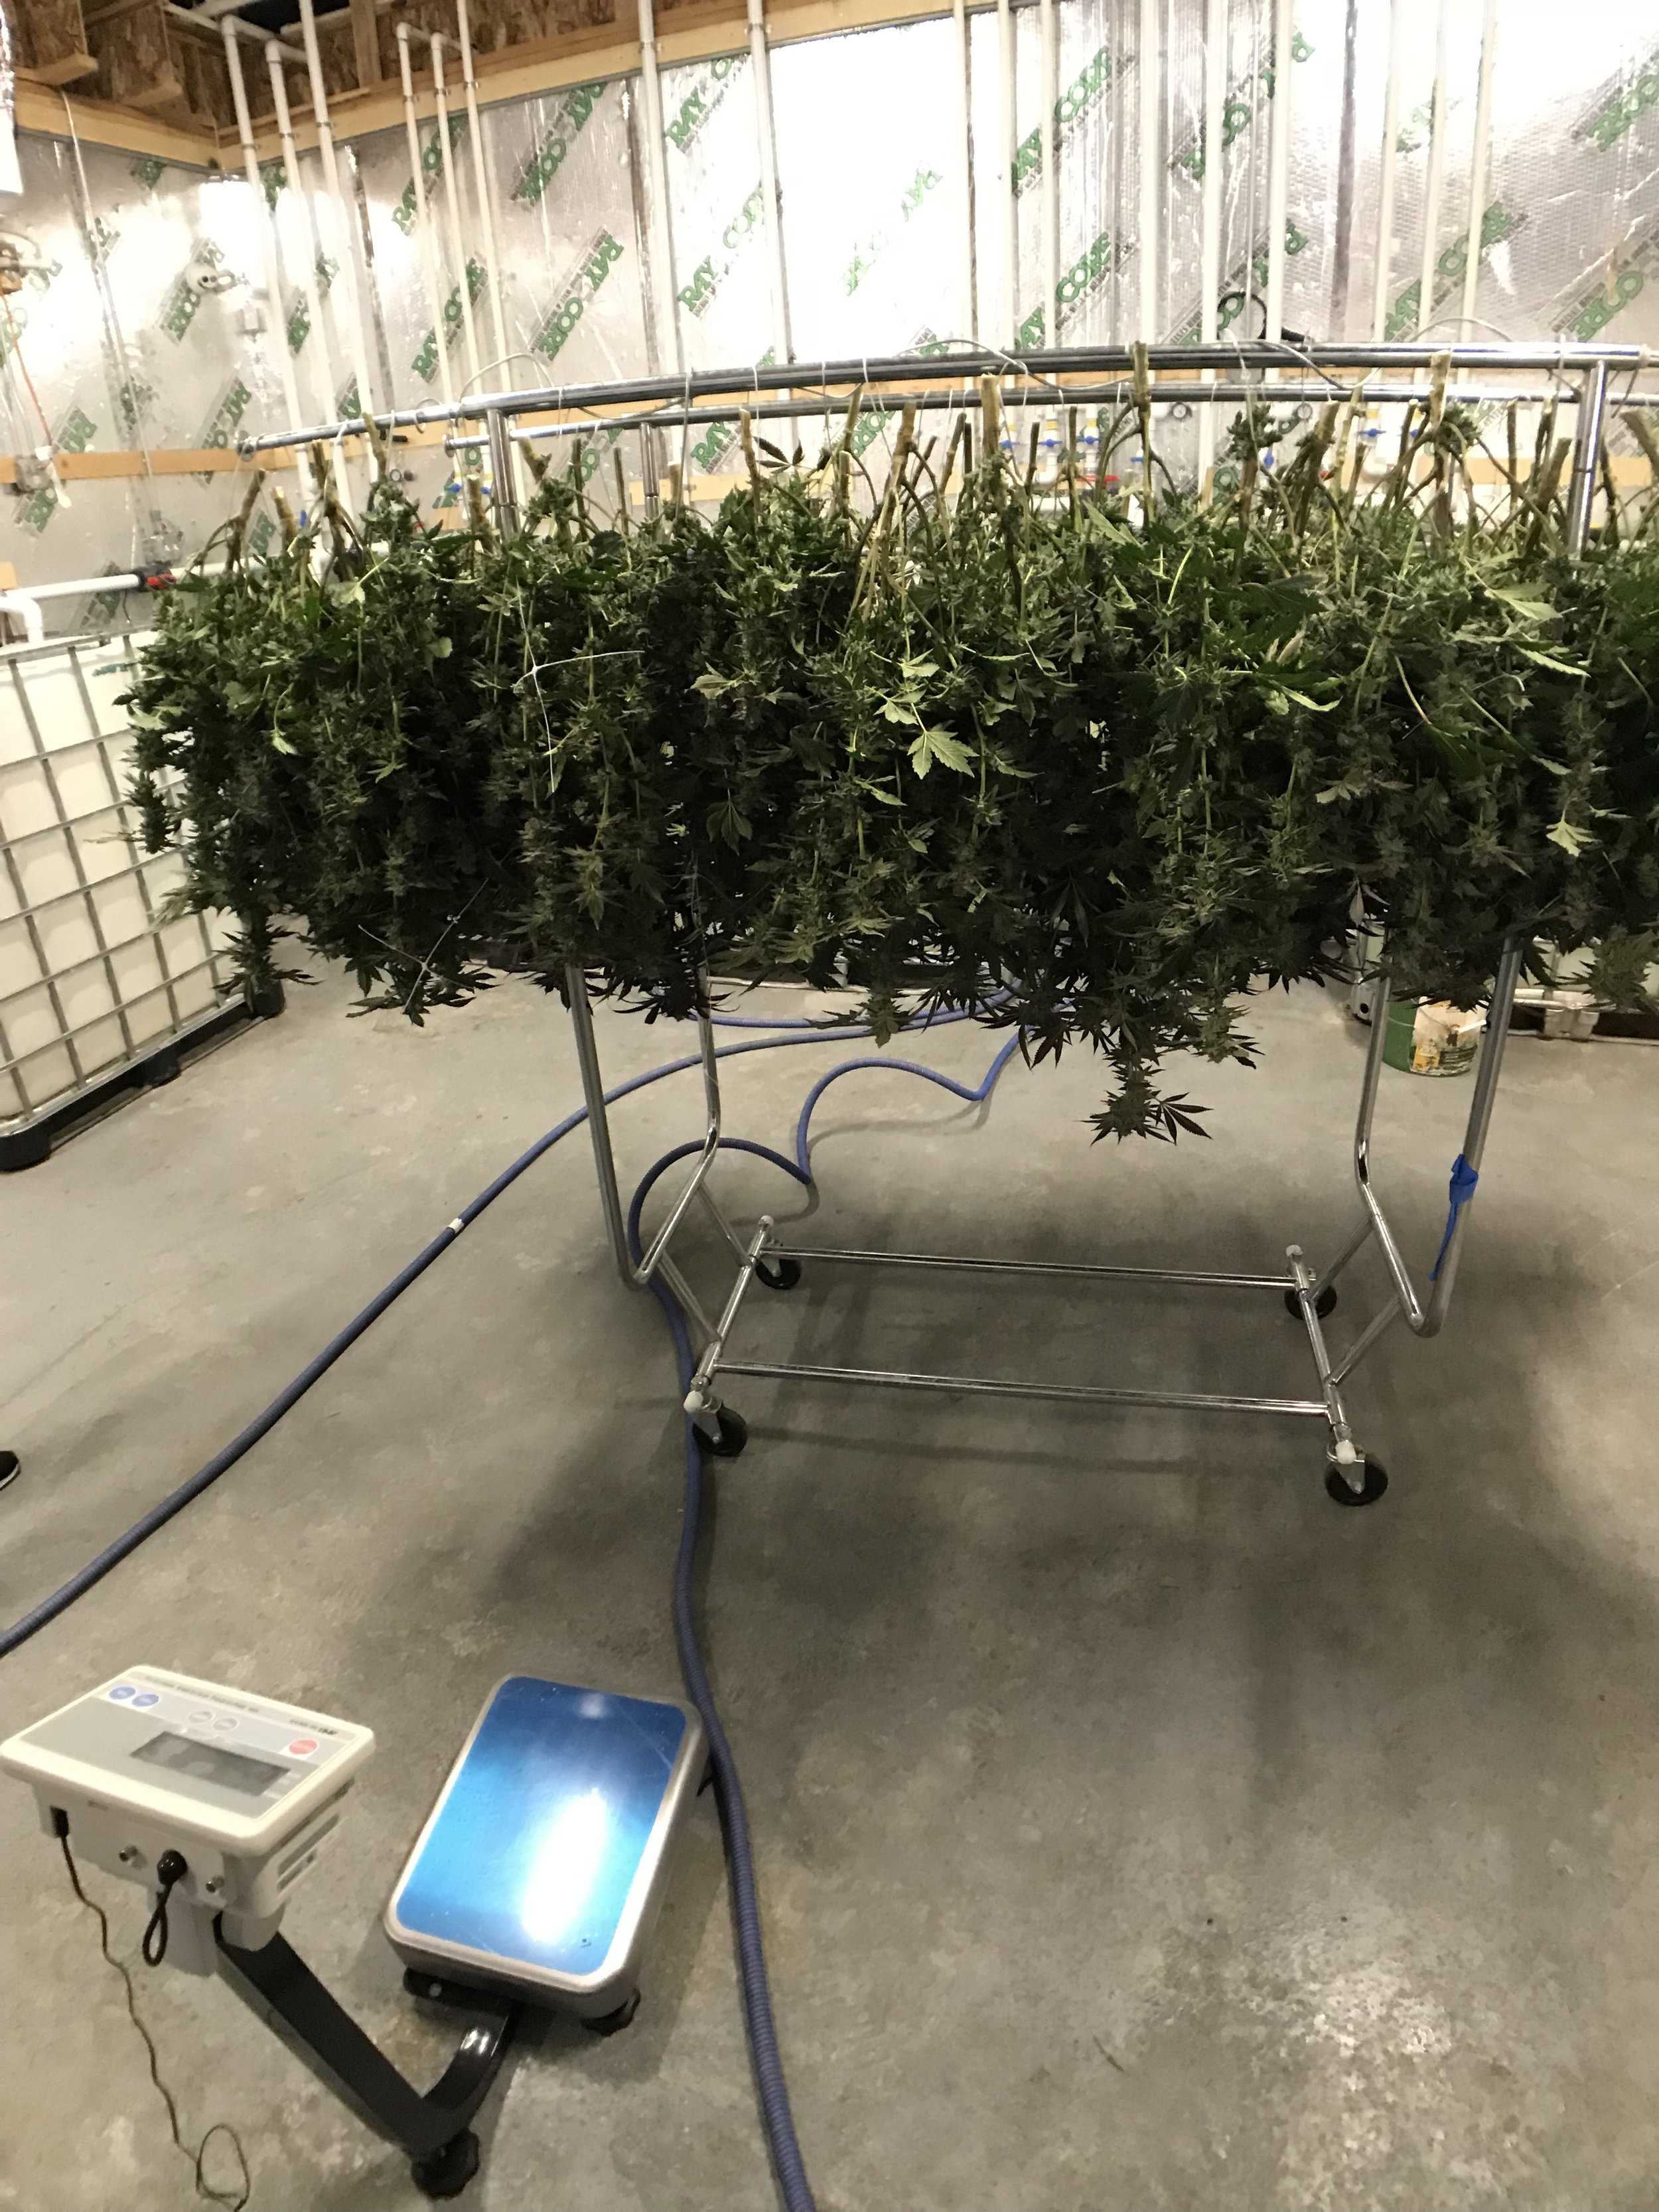 Weighing Harvest into METRC Track & Trace System at licensed facility in Adelanto, CA.